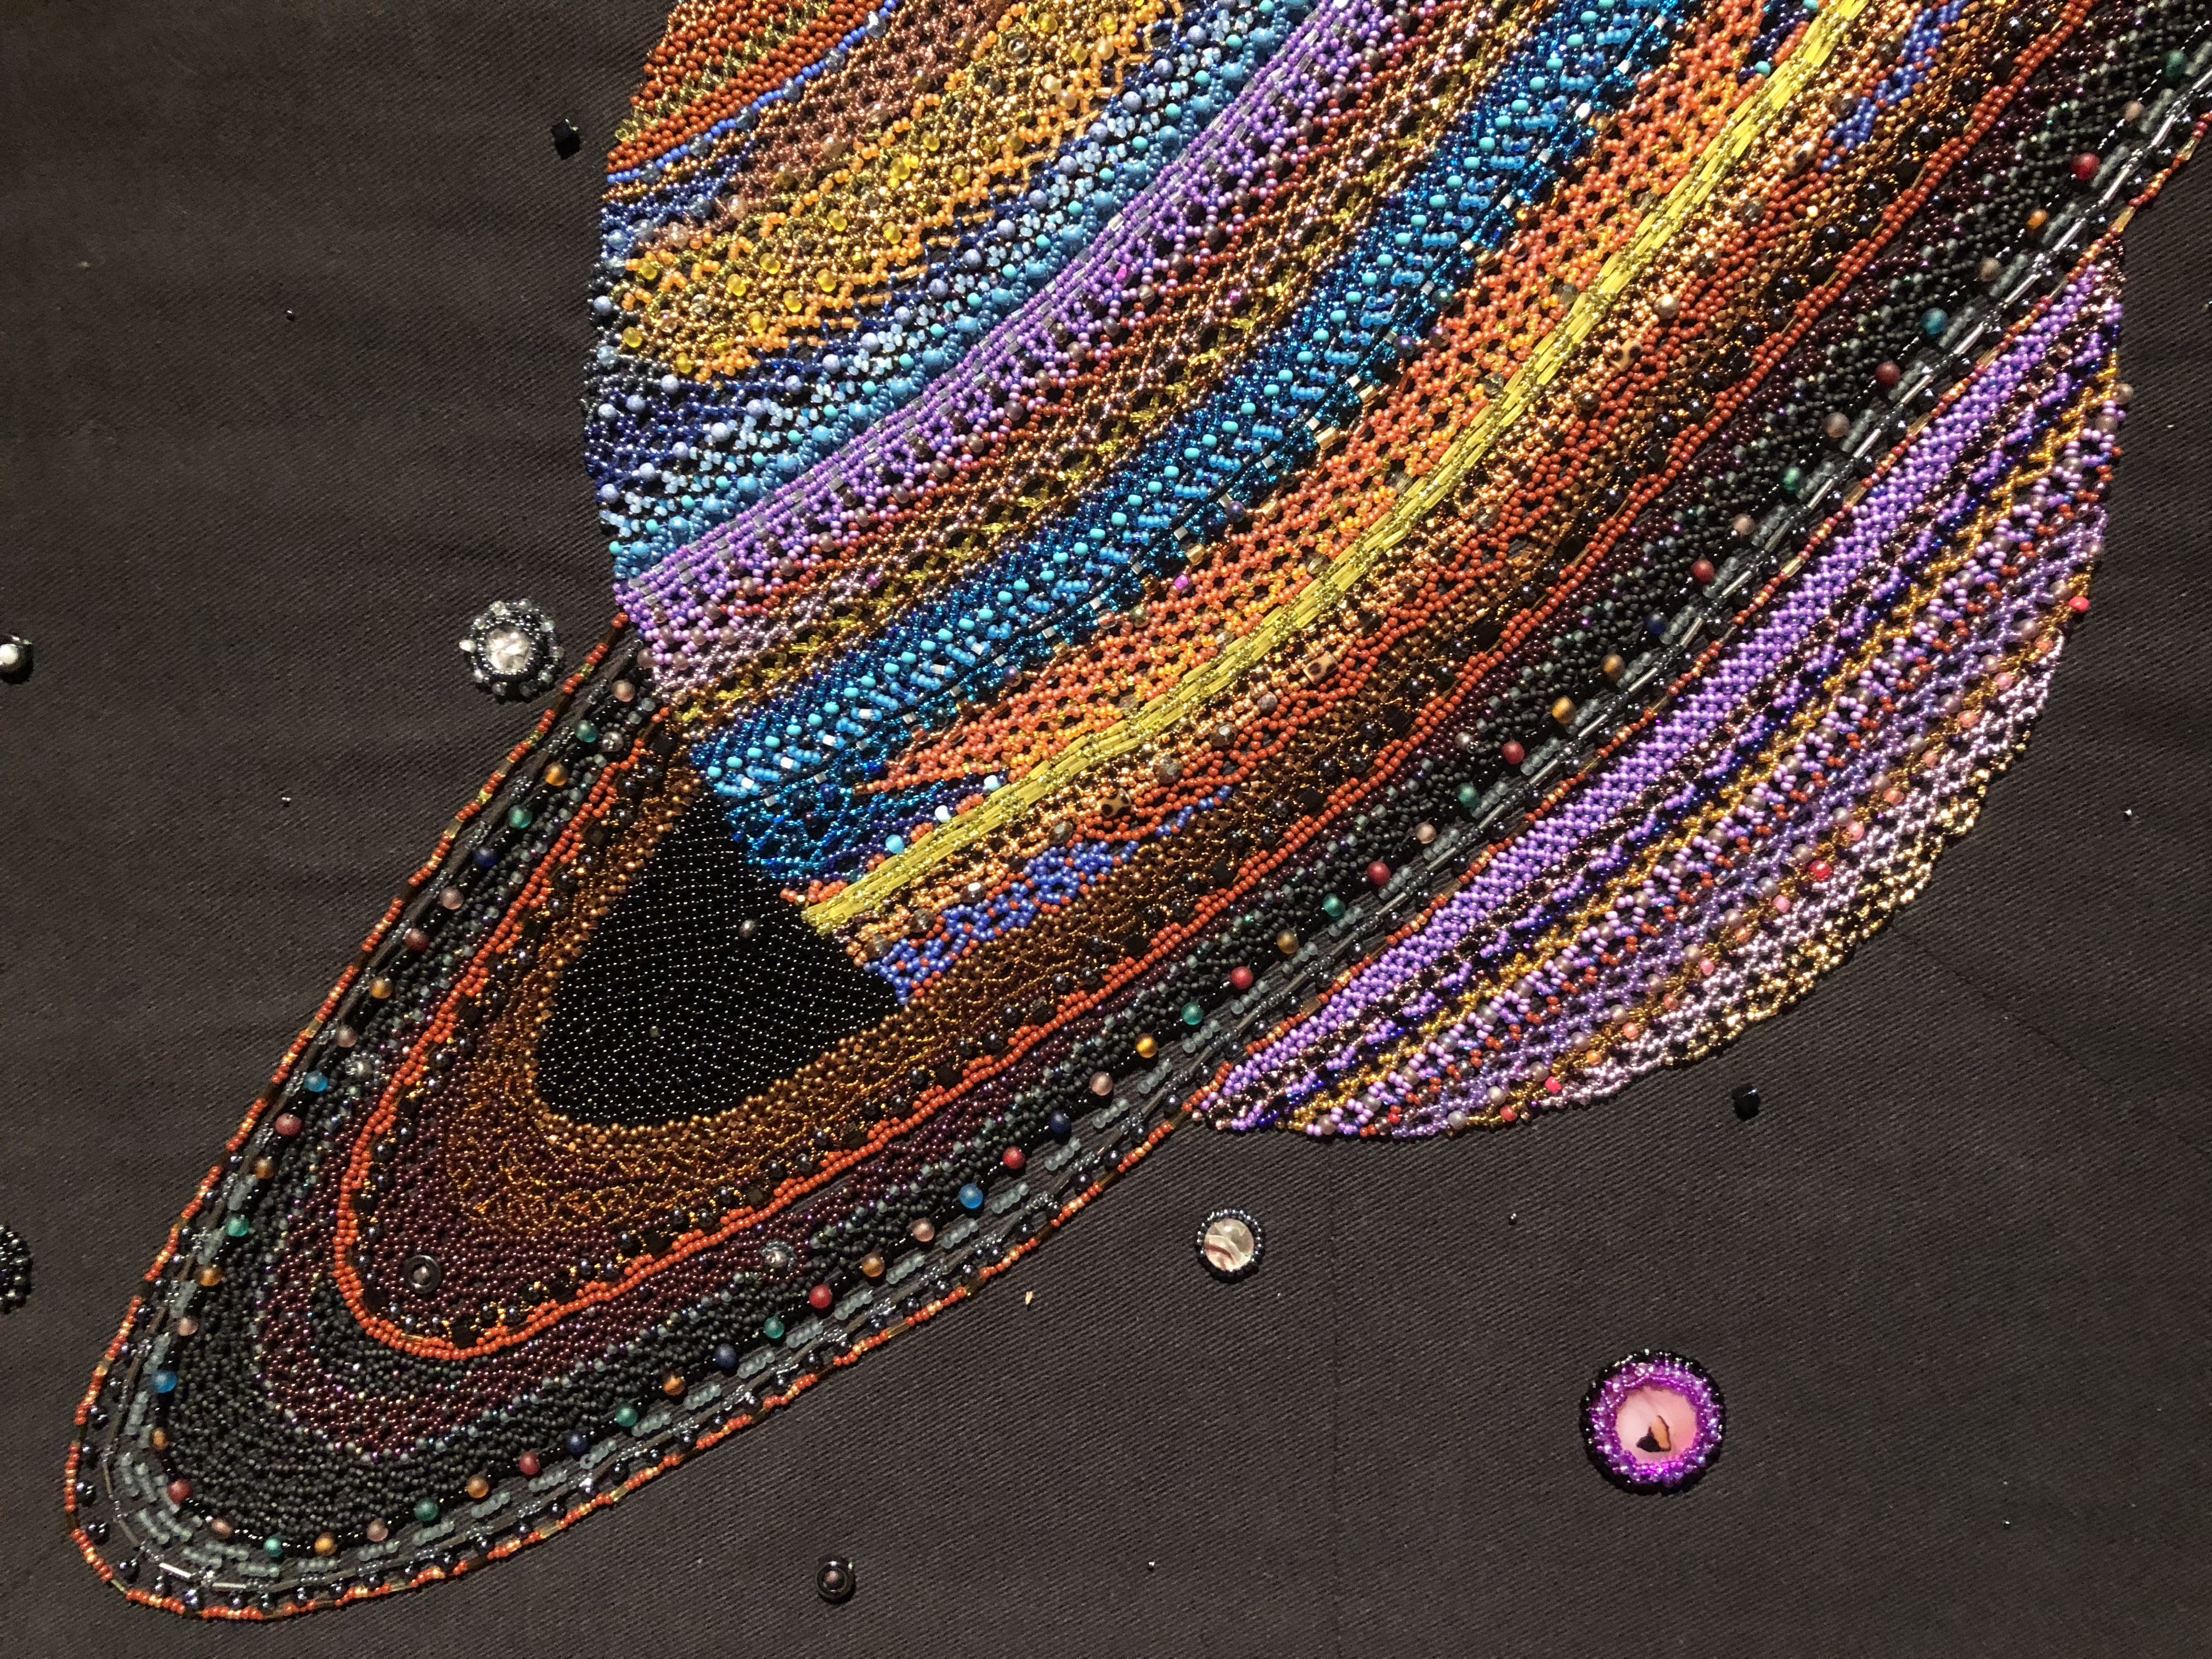 Saturn (detail), Beadwork on canvas, 29x26 in, by Margaret Nazon. Courtesy PWNHC